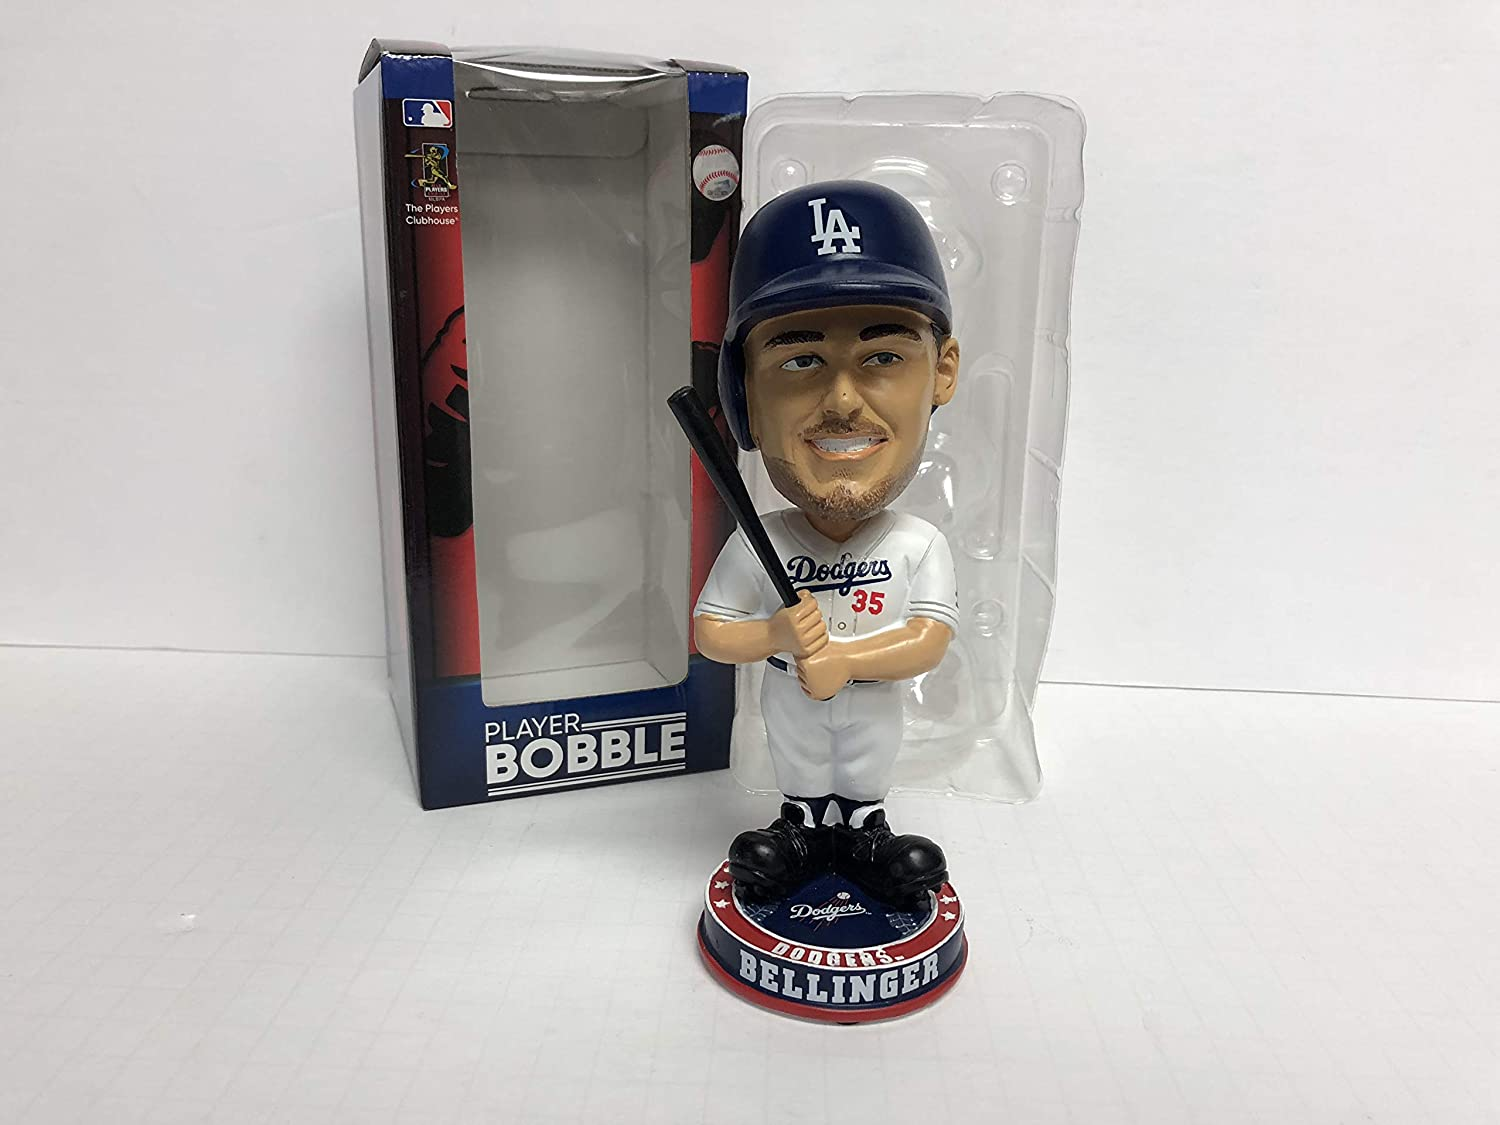 Cody Bellinger 2018 Los Angeles Dodgers Limited Edition Bobble Bobblehead 1/144